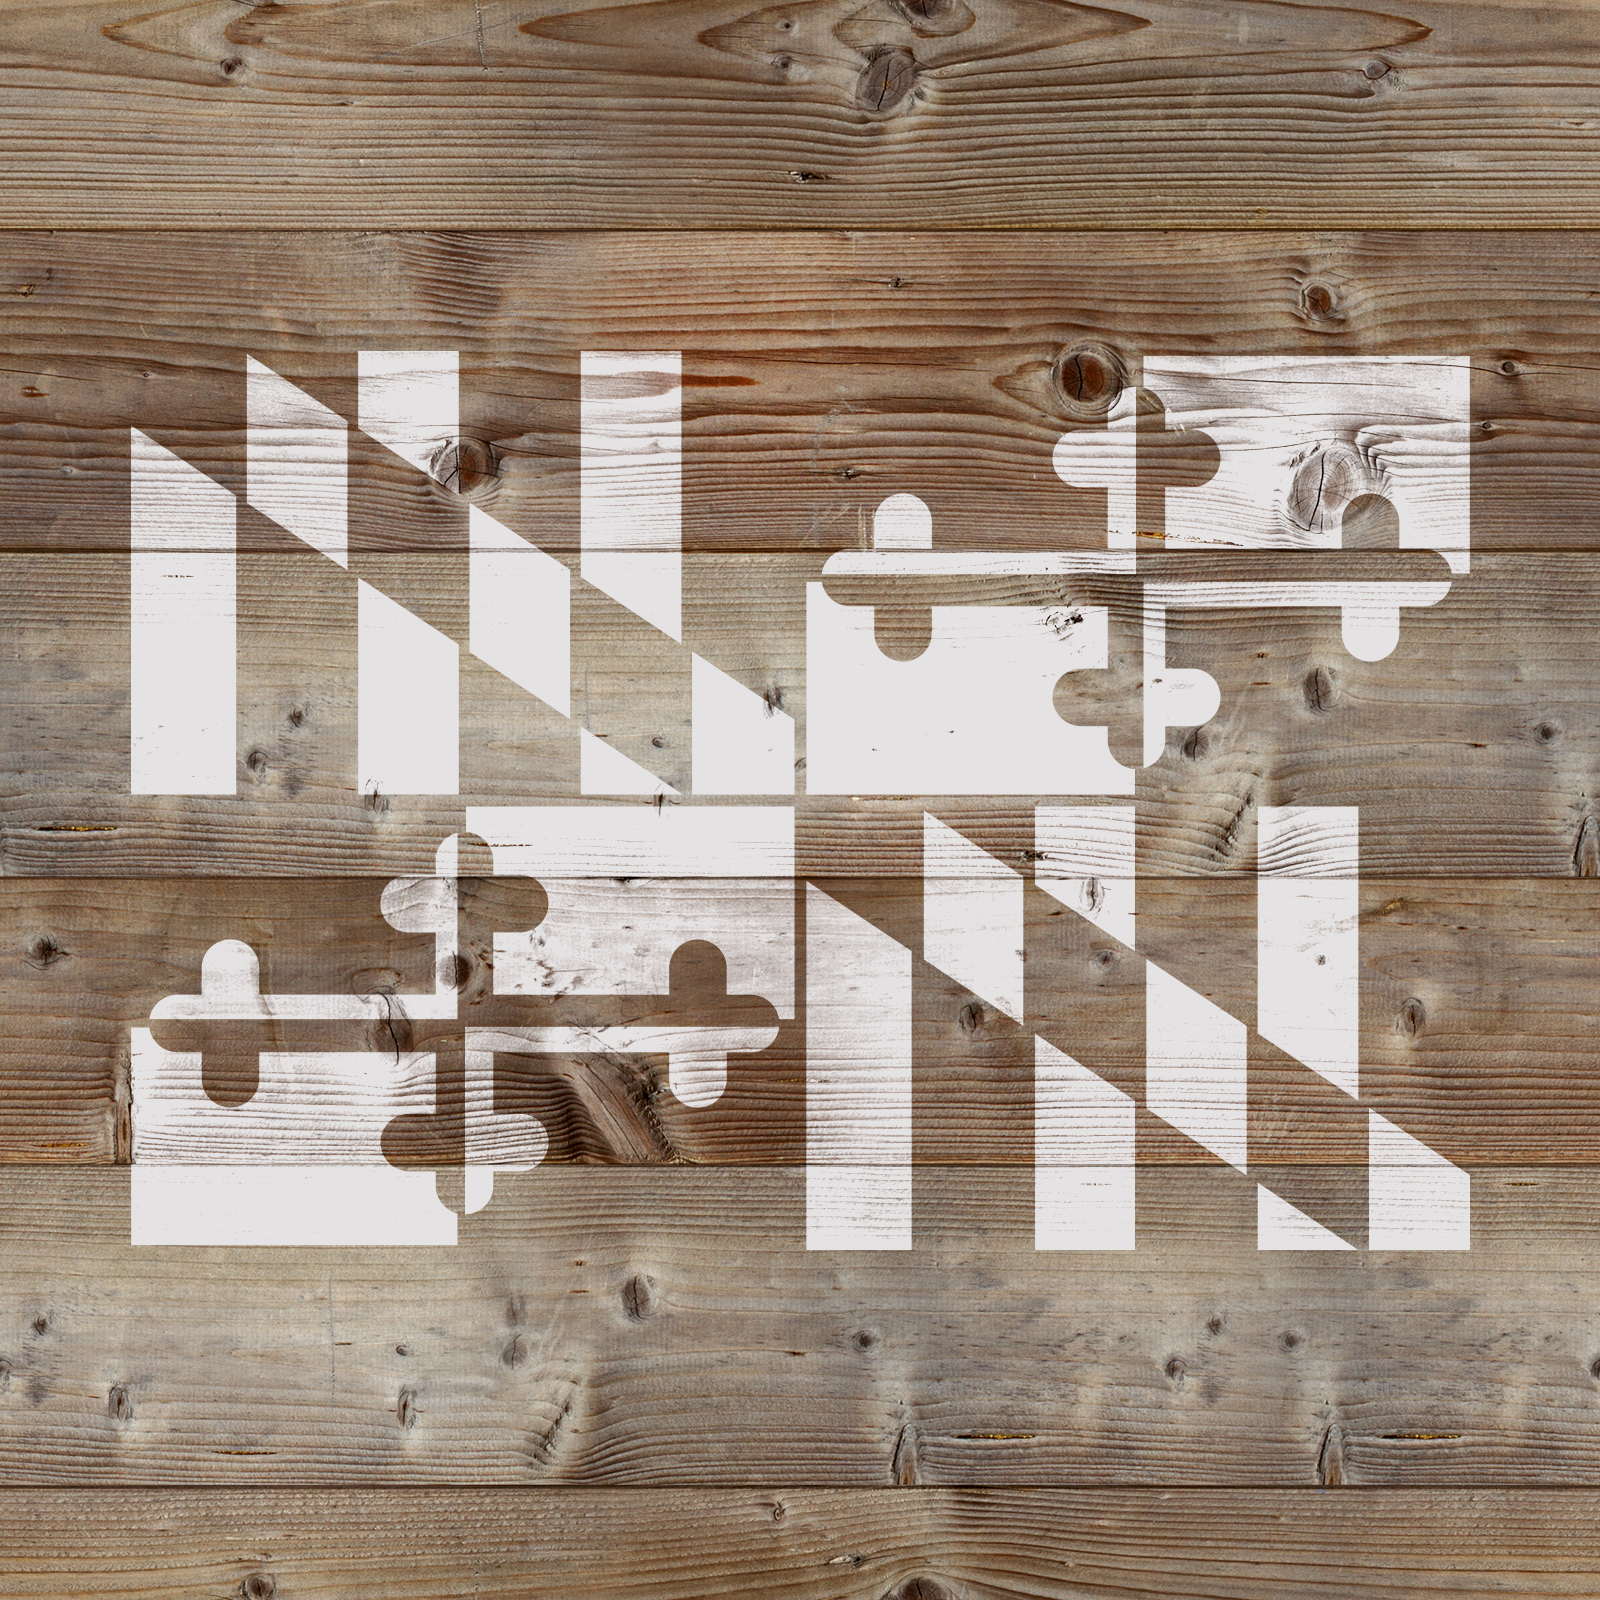 Maryland Flag Stencil - Reusable Stencils of the Maryland Flag - Made in USA!